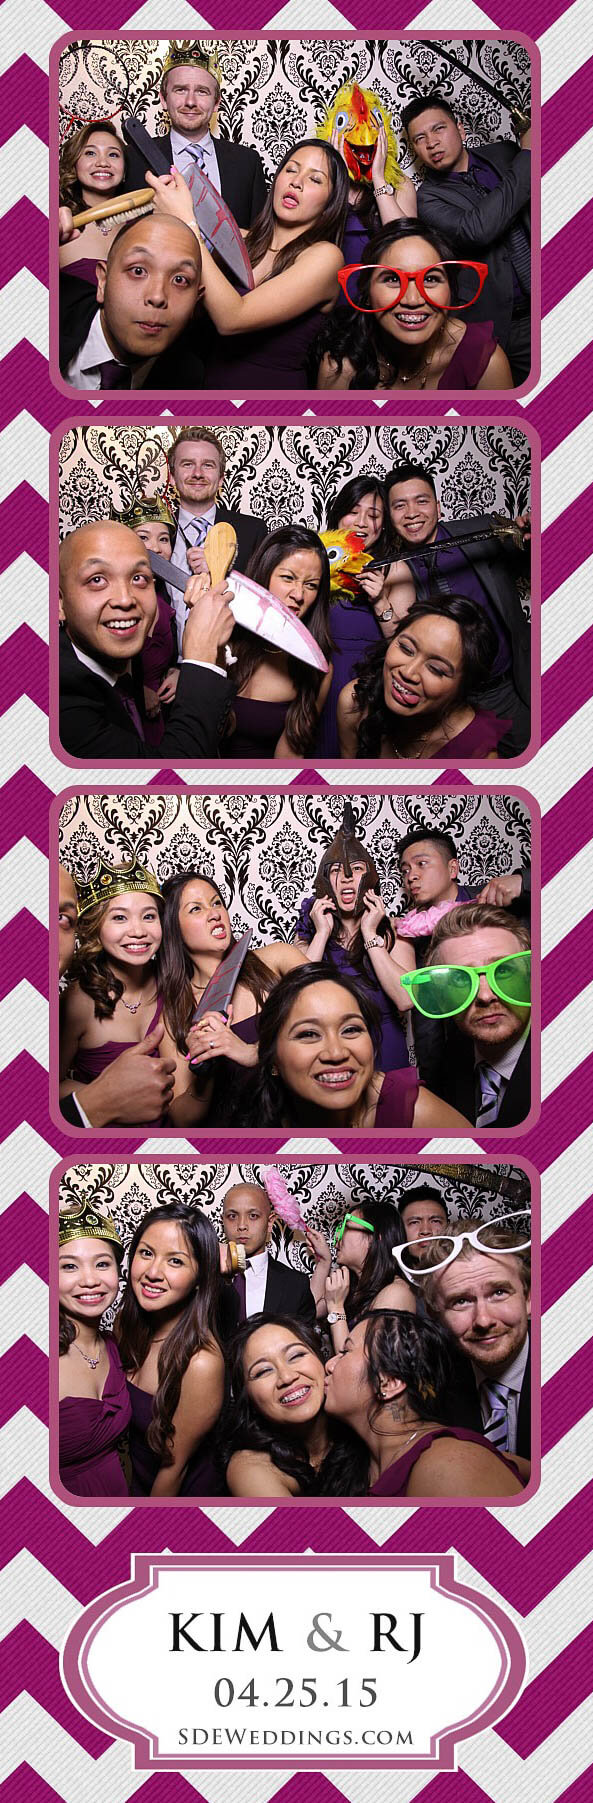 Toronto Filipino Wedding Photo Booth Rental at Teatro Conference Centre Milton 4